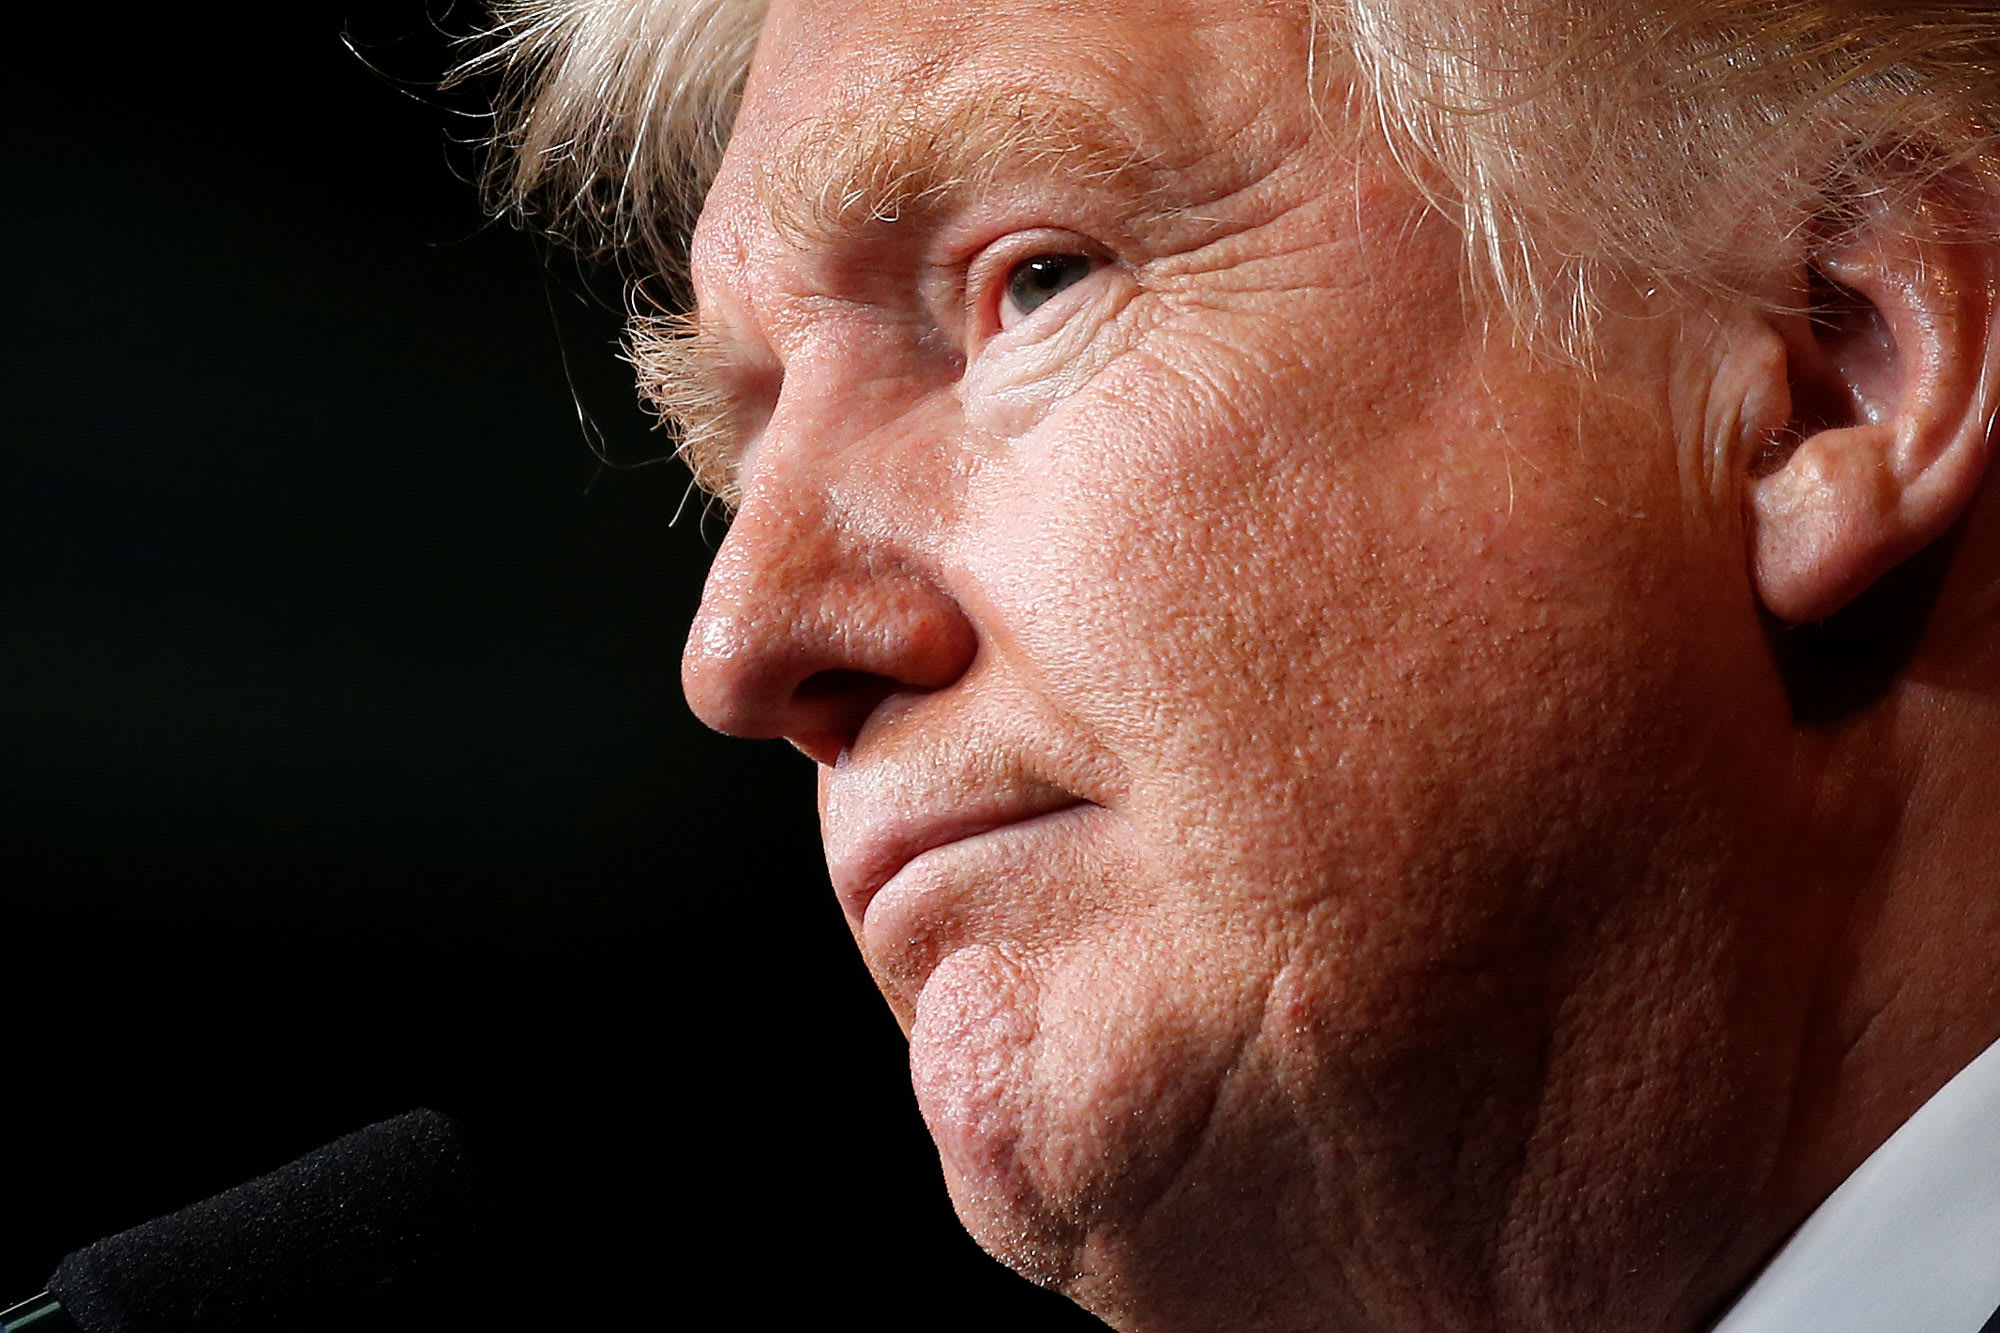 The Dow is up 38% since Trump's election, down from 61% in a matter of days amid sell-off